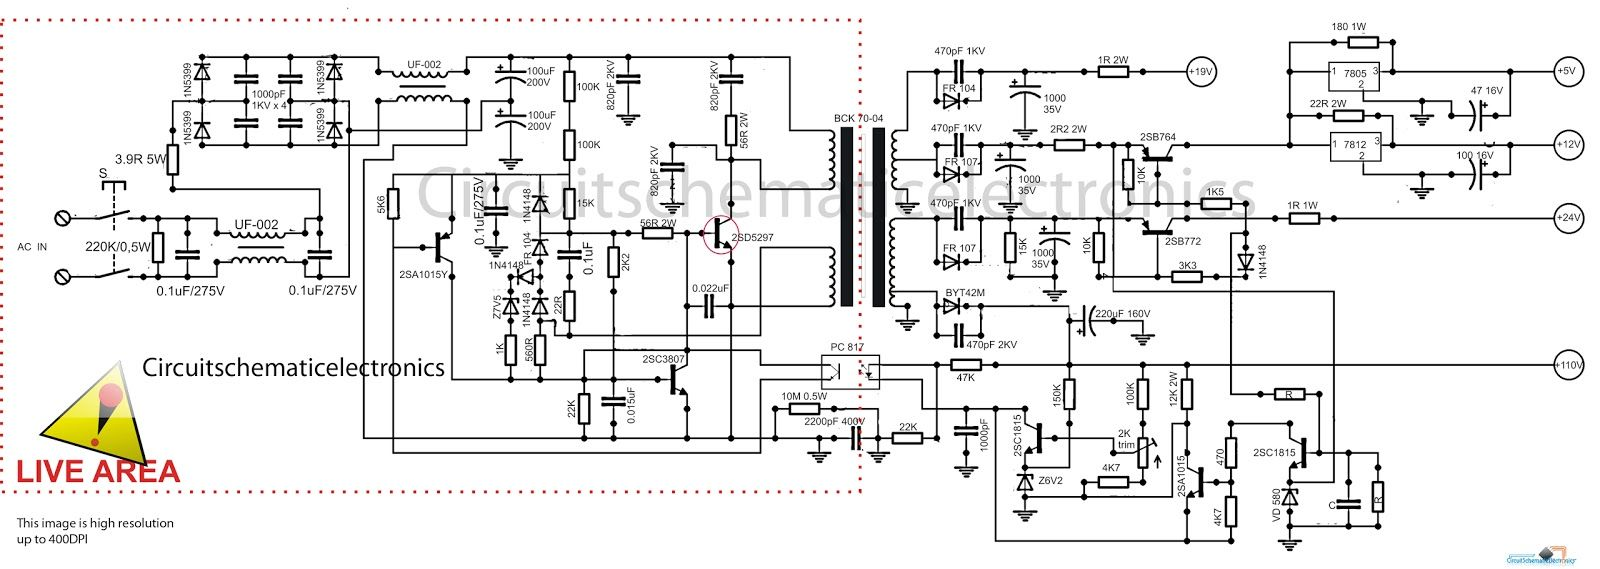 switching power suplly for color television circuit electronic circuit [ 1600 x 569 Pixel ]